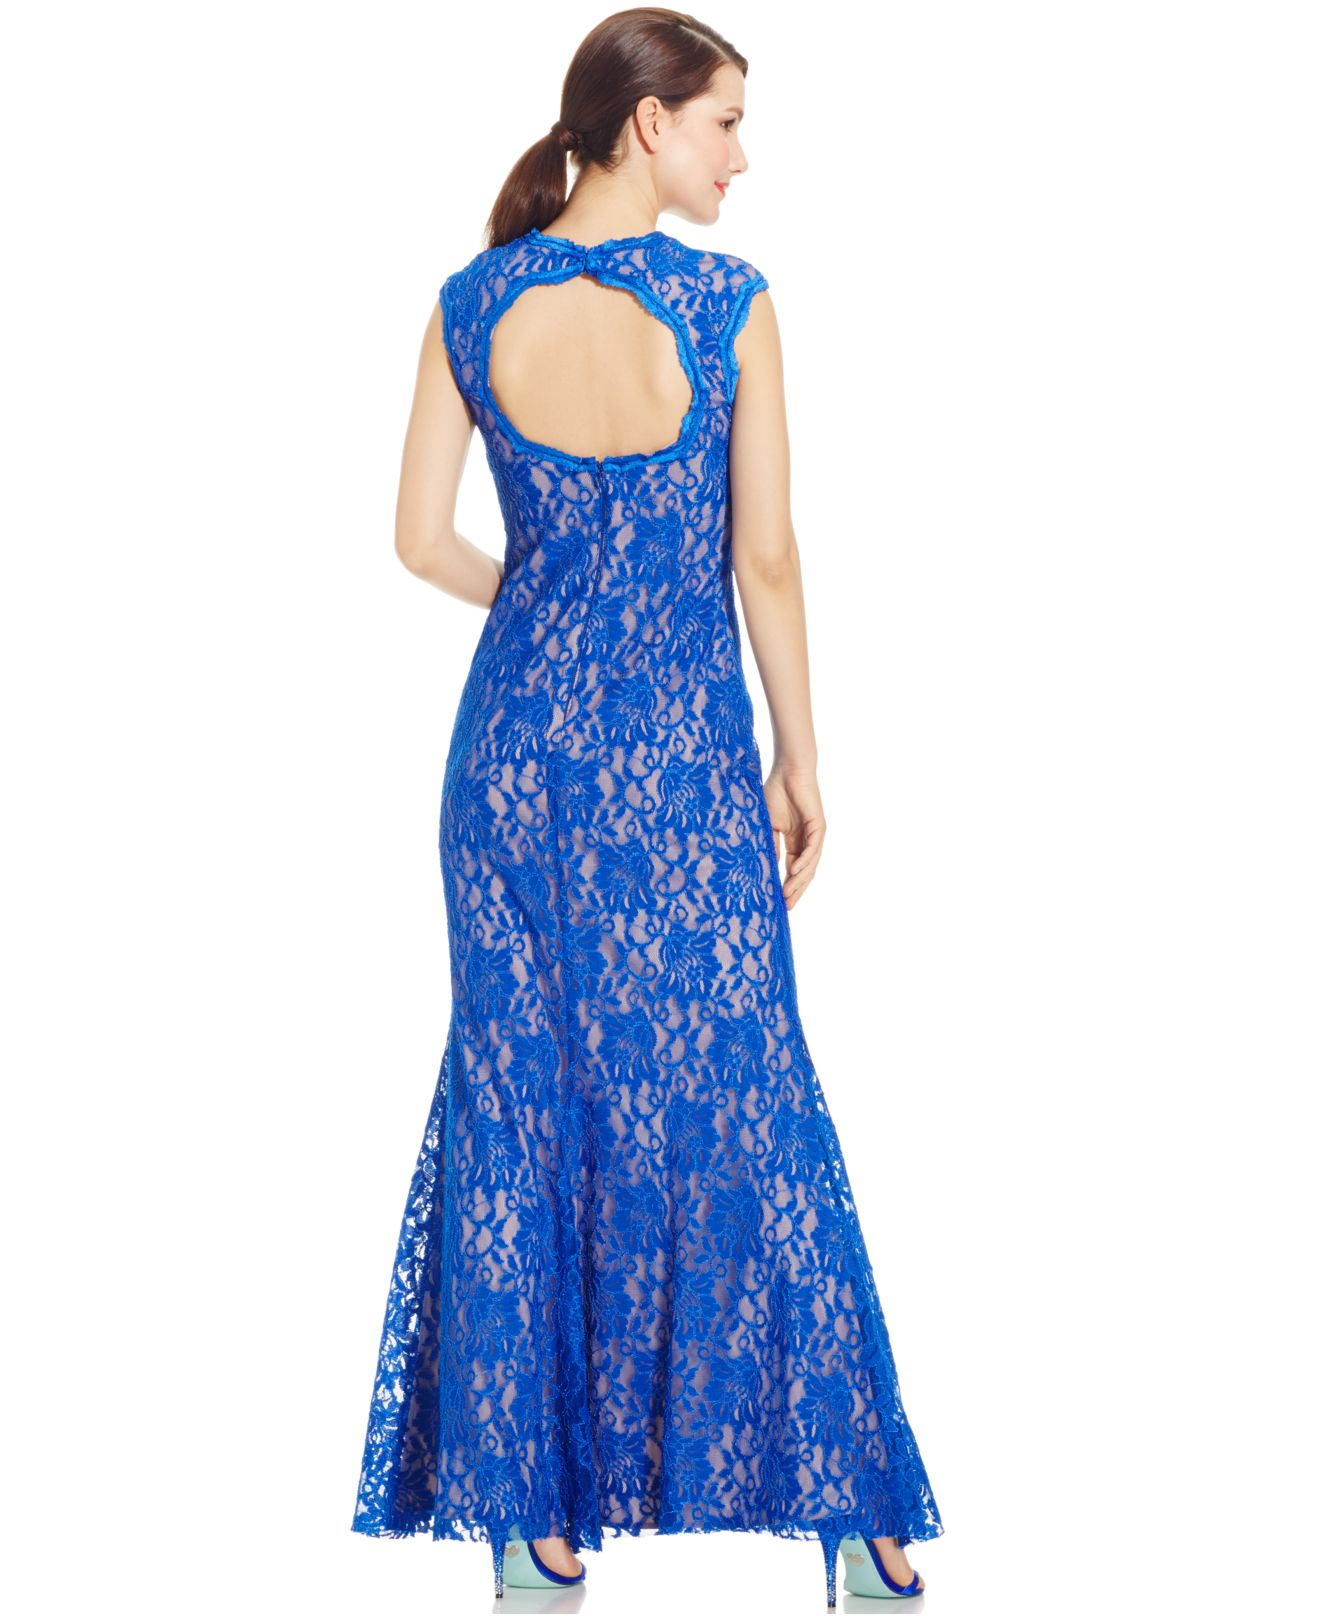 433eef05a5b Xscape Contrast-lace V-neck Gown in Blue - Lyst